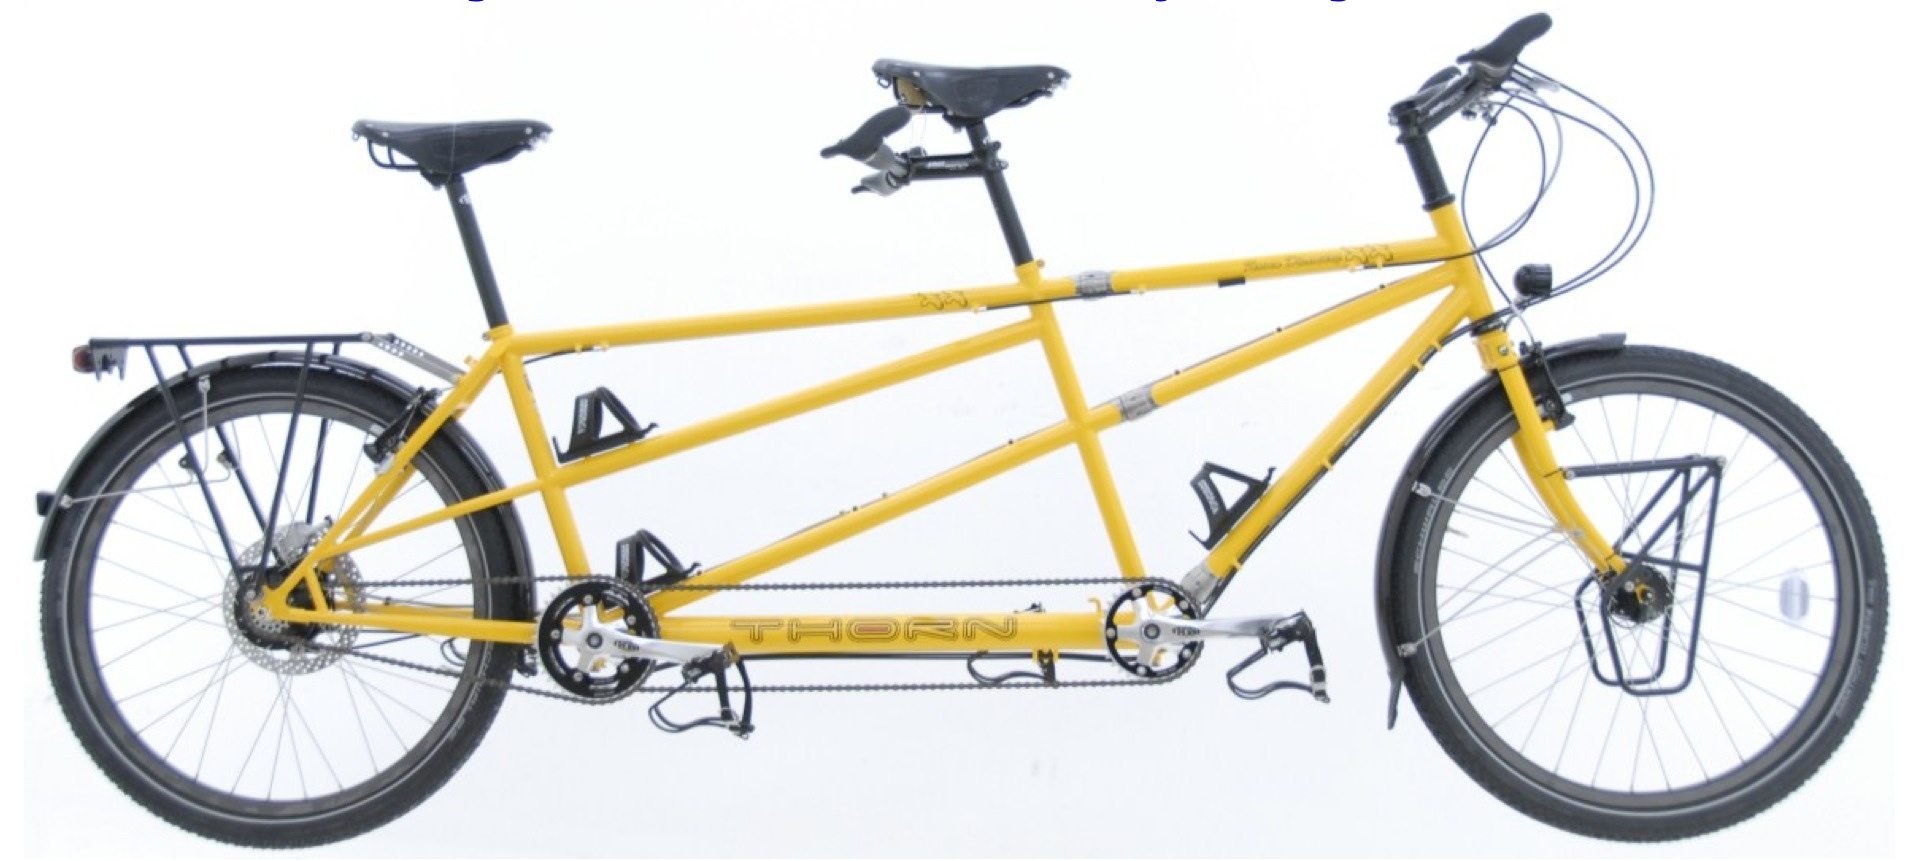 Thorn Are Renowned For Putting Together A Nice Touring Tandem